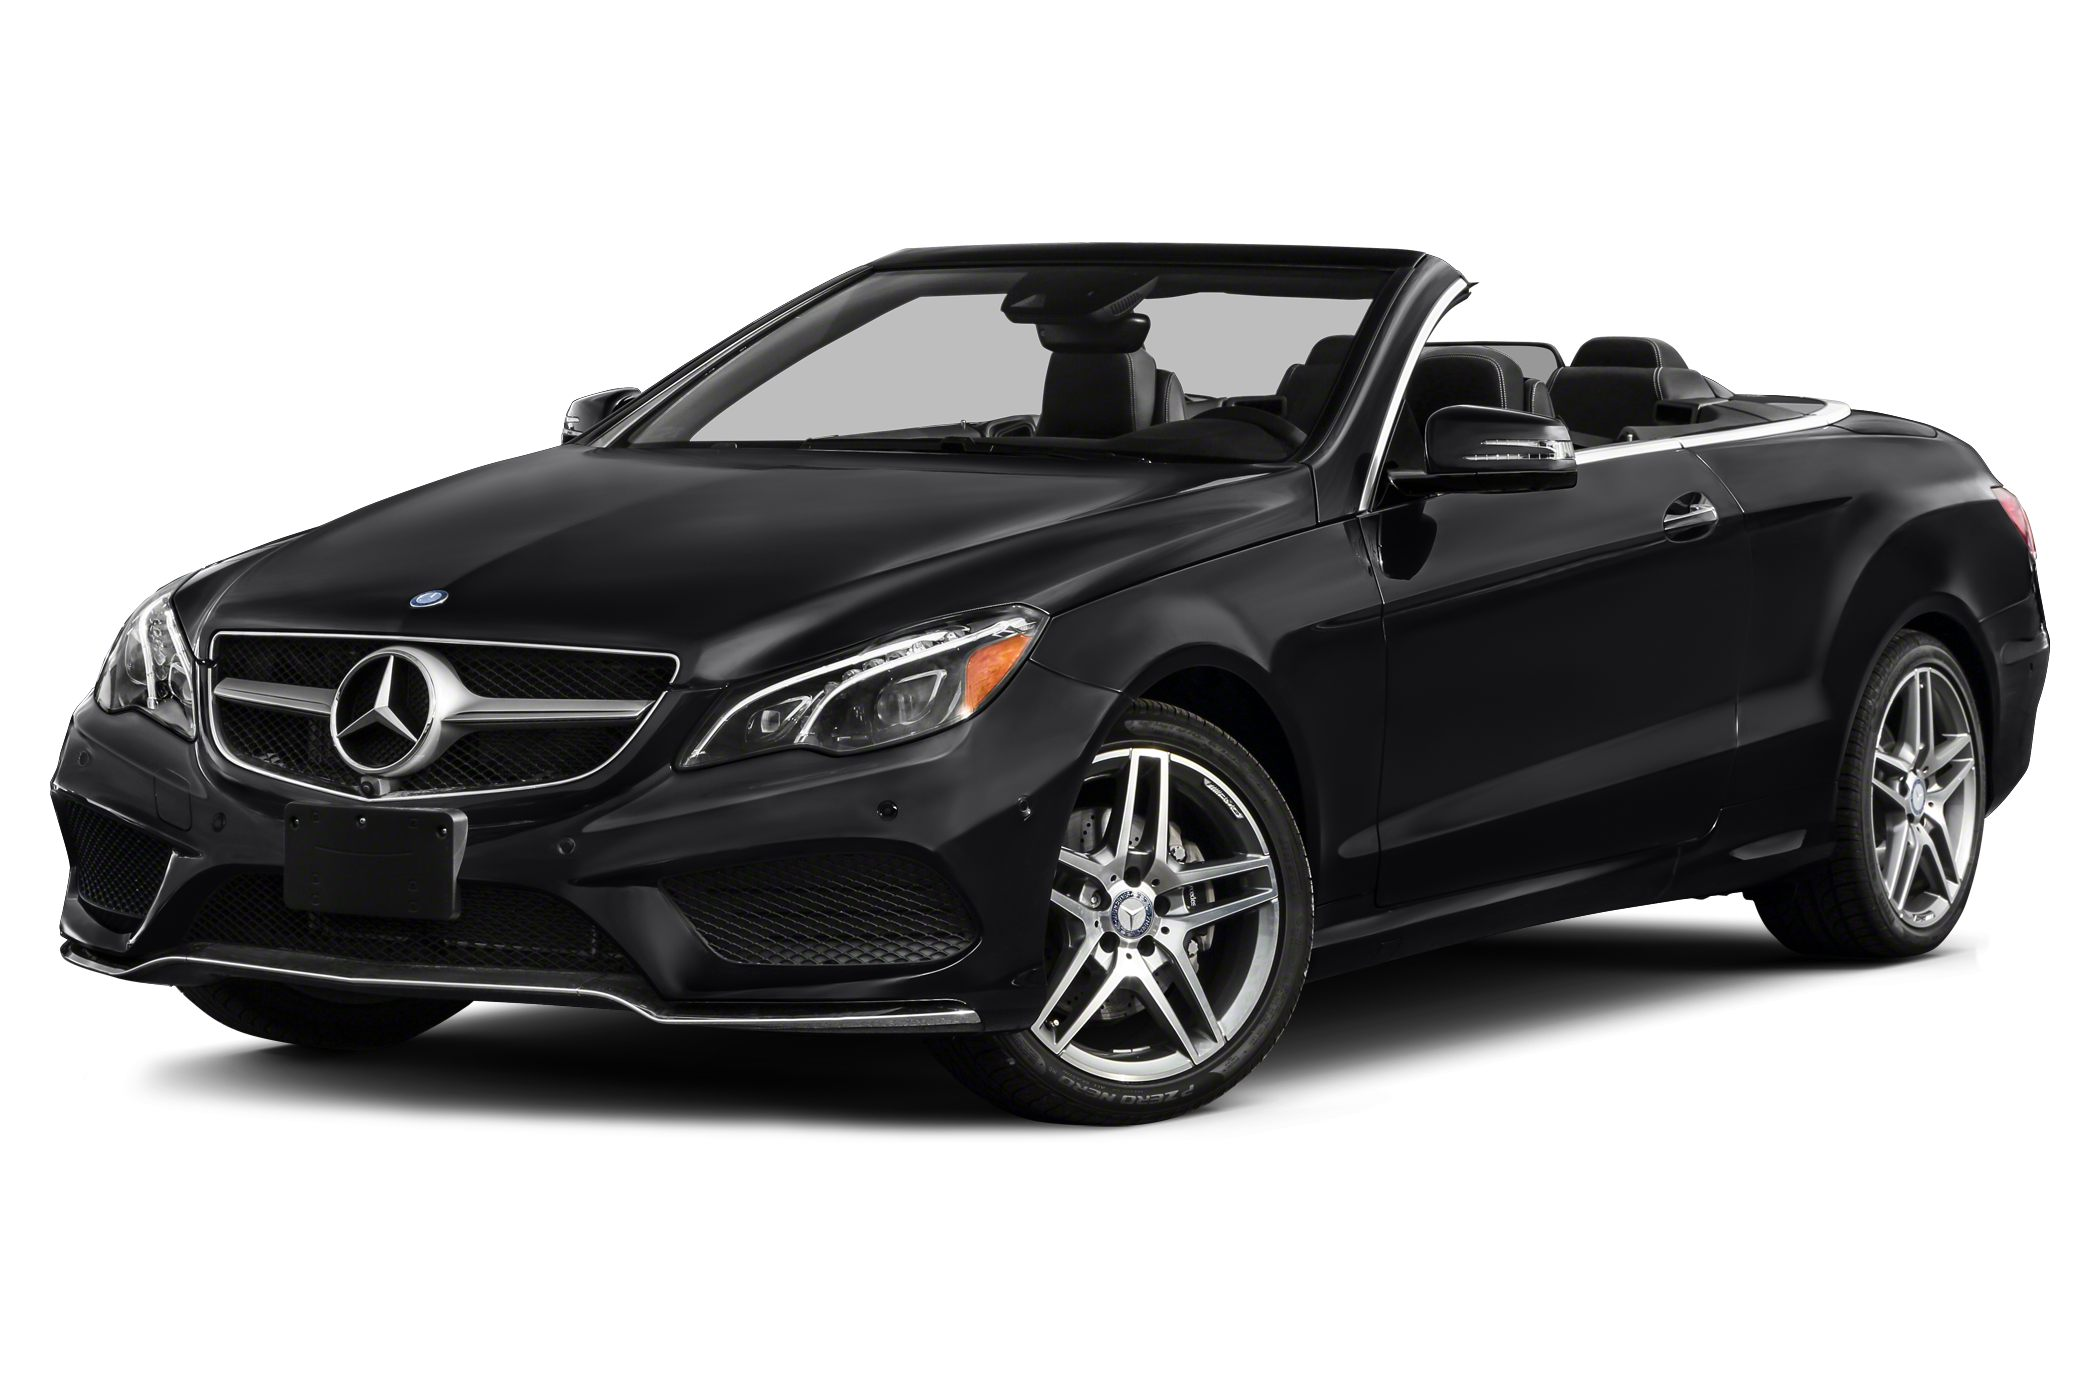 2015 Mercedes-Benz E-Class E400 Convertible for sale in Portland for $68,095 with 4 miles